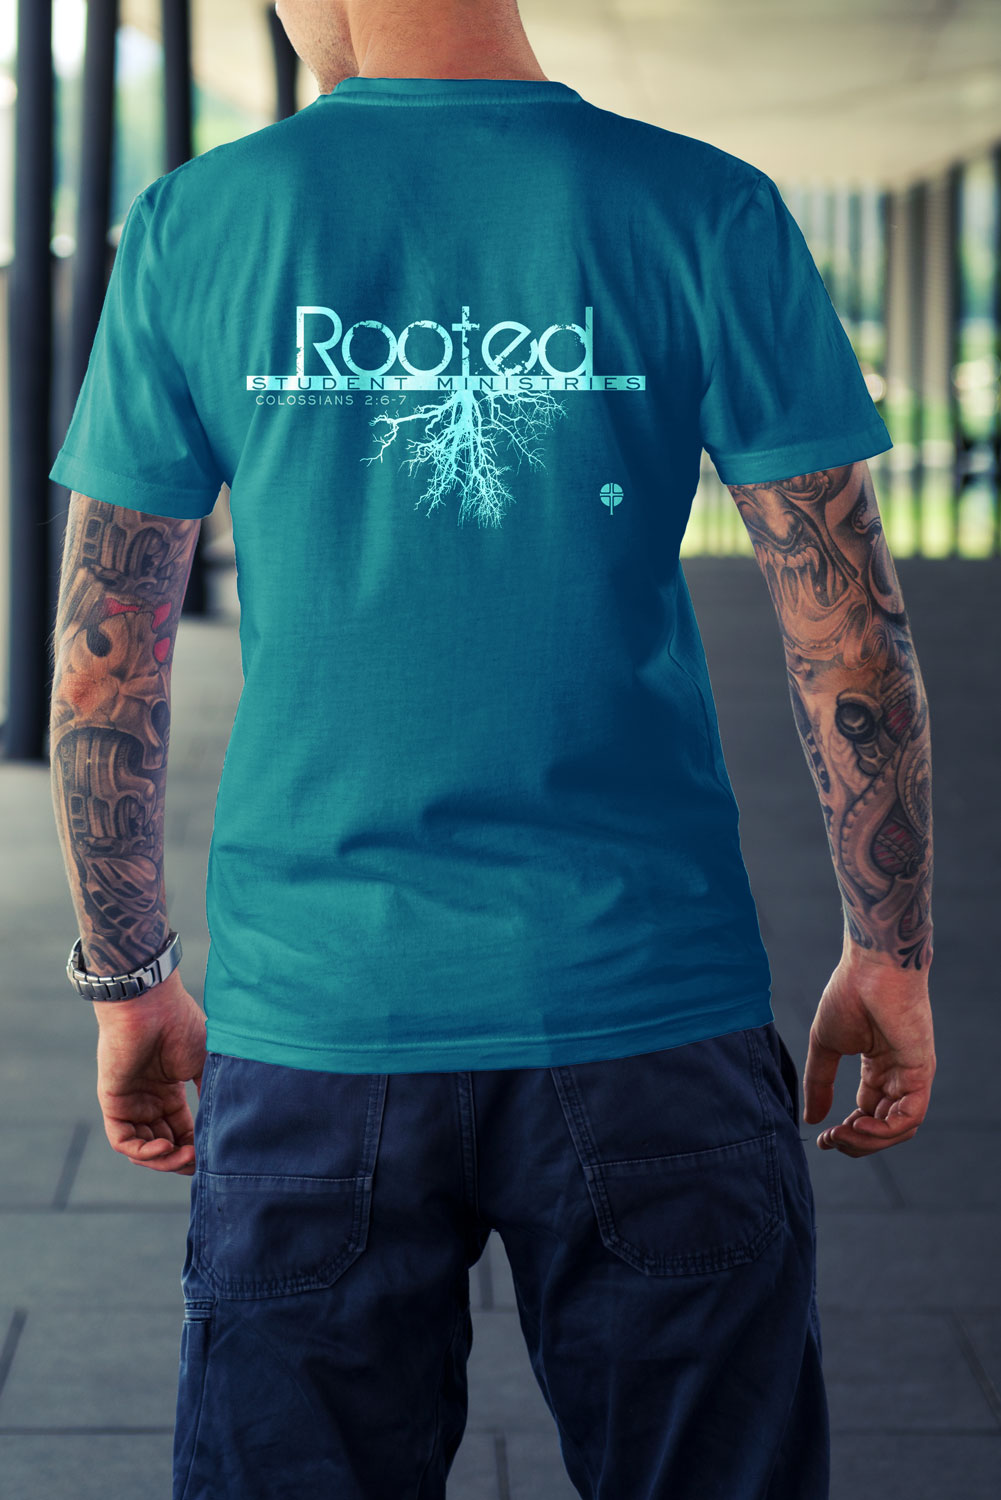 T Shirt Design By Red Kanvas For Rooted Student Ministries T Shirt   Design